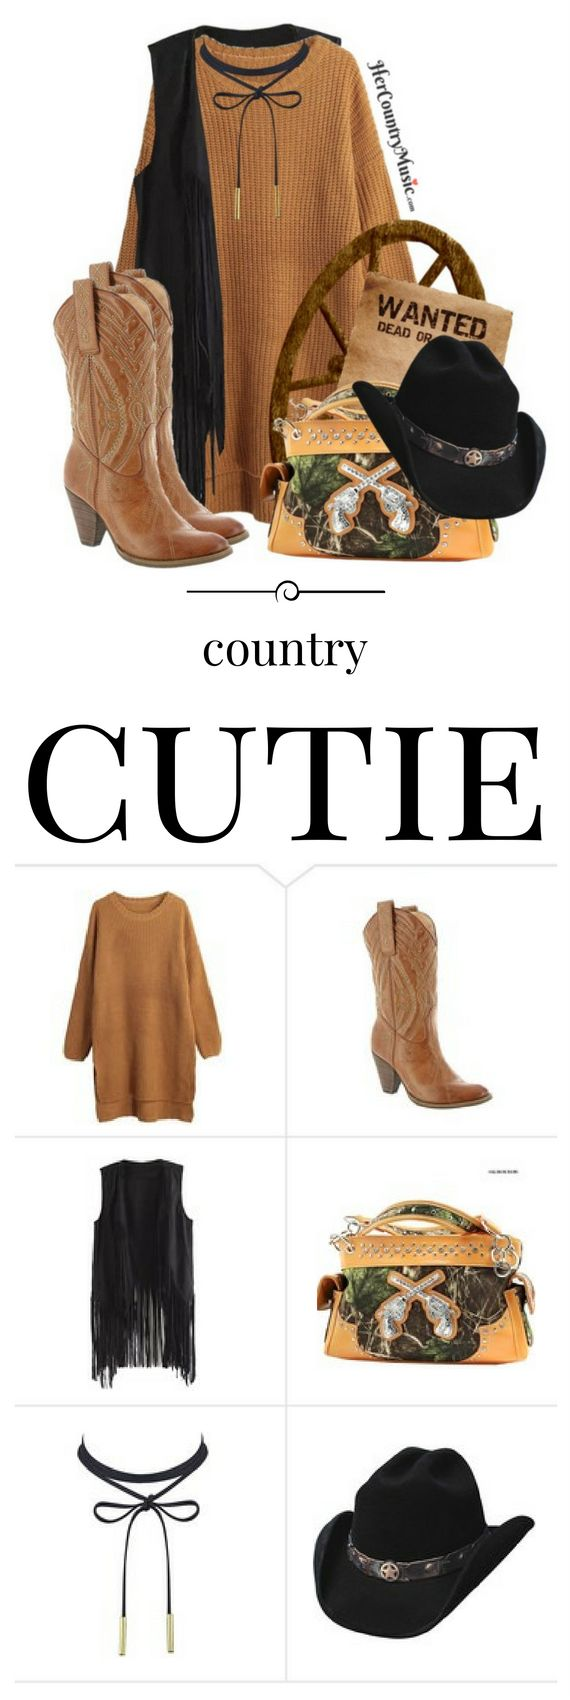 A fun Country Outfit Country Cutie for your next country music concert